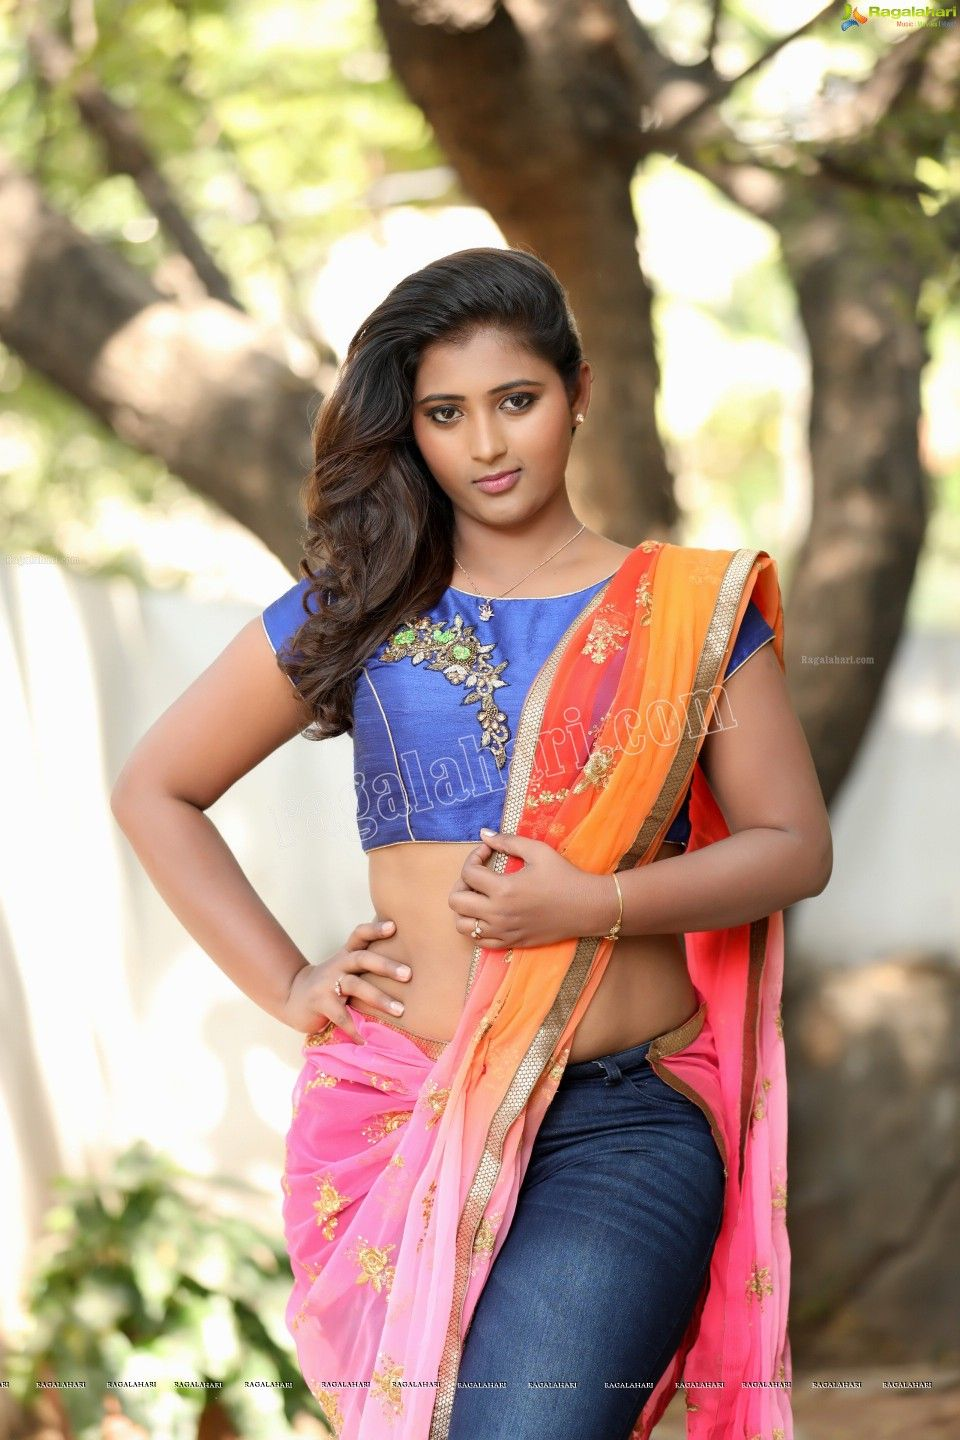 Check out photos of of Telugu movie RGVs Naked heroine